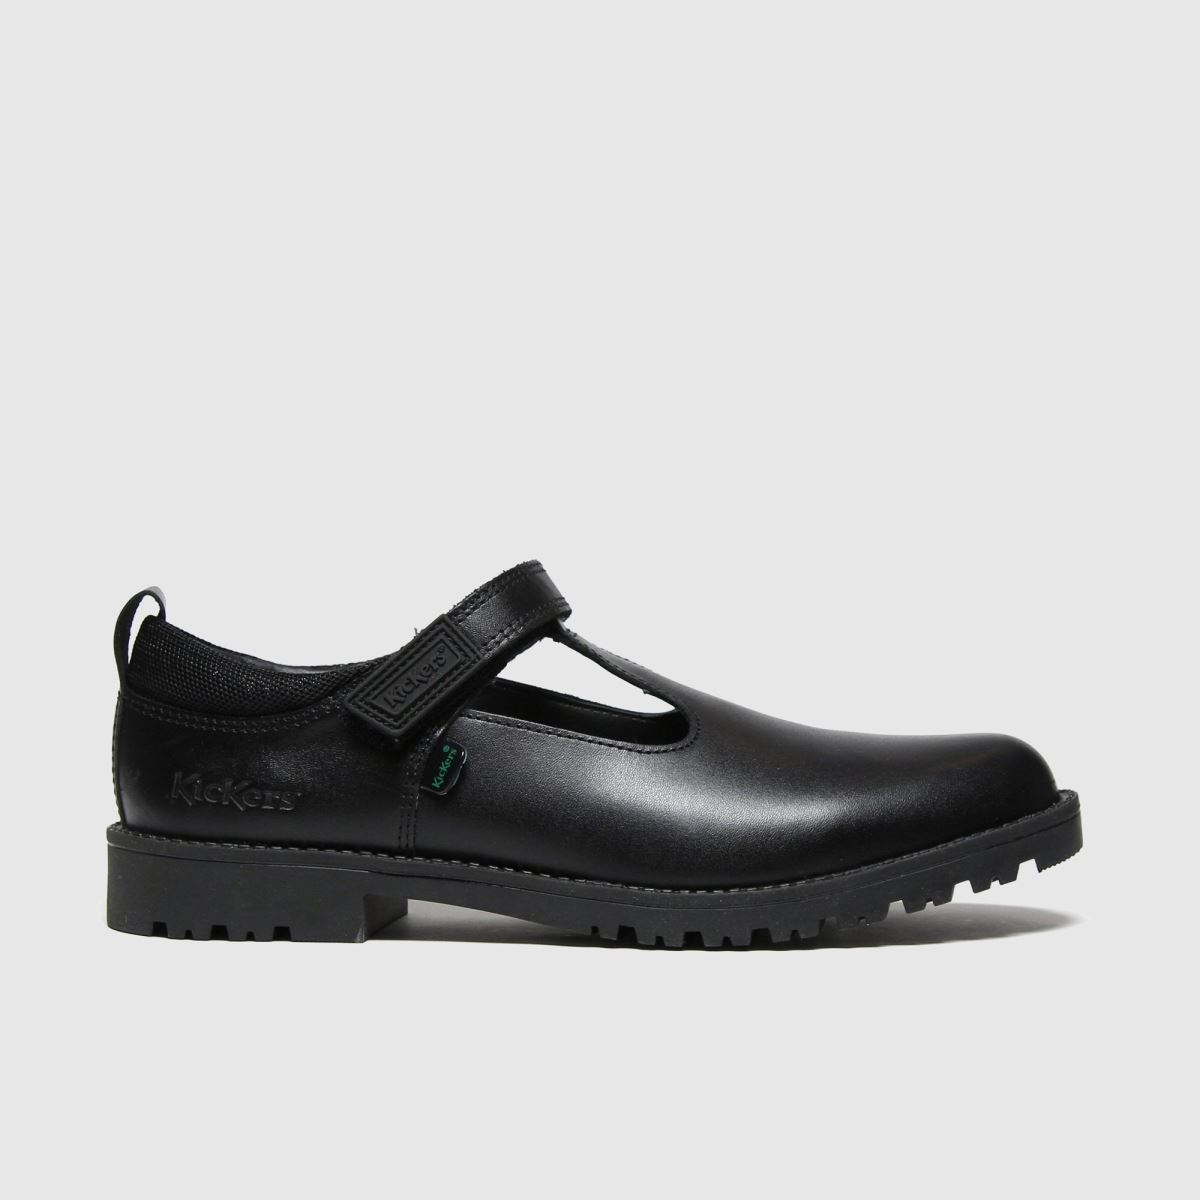 Kickers Black Lachly T Bar Boots Youth